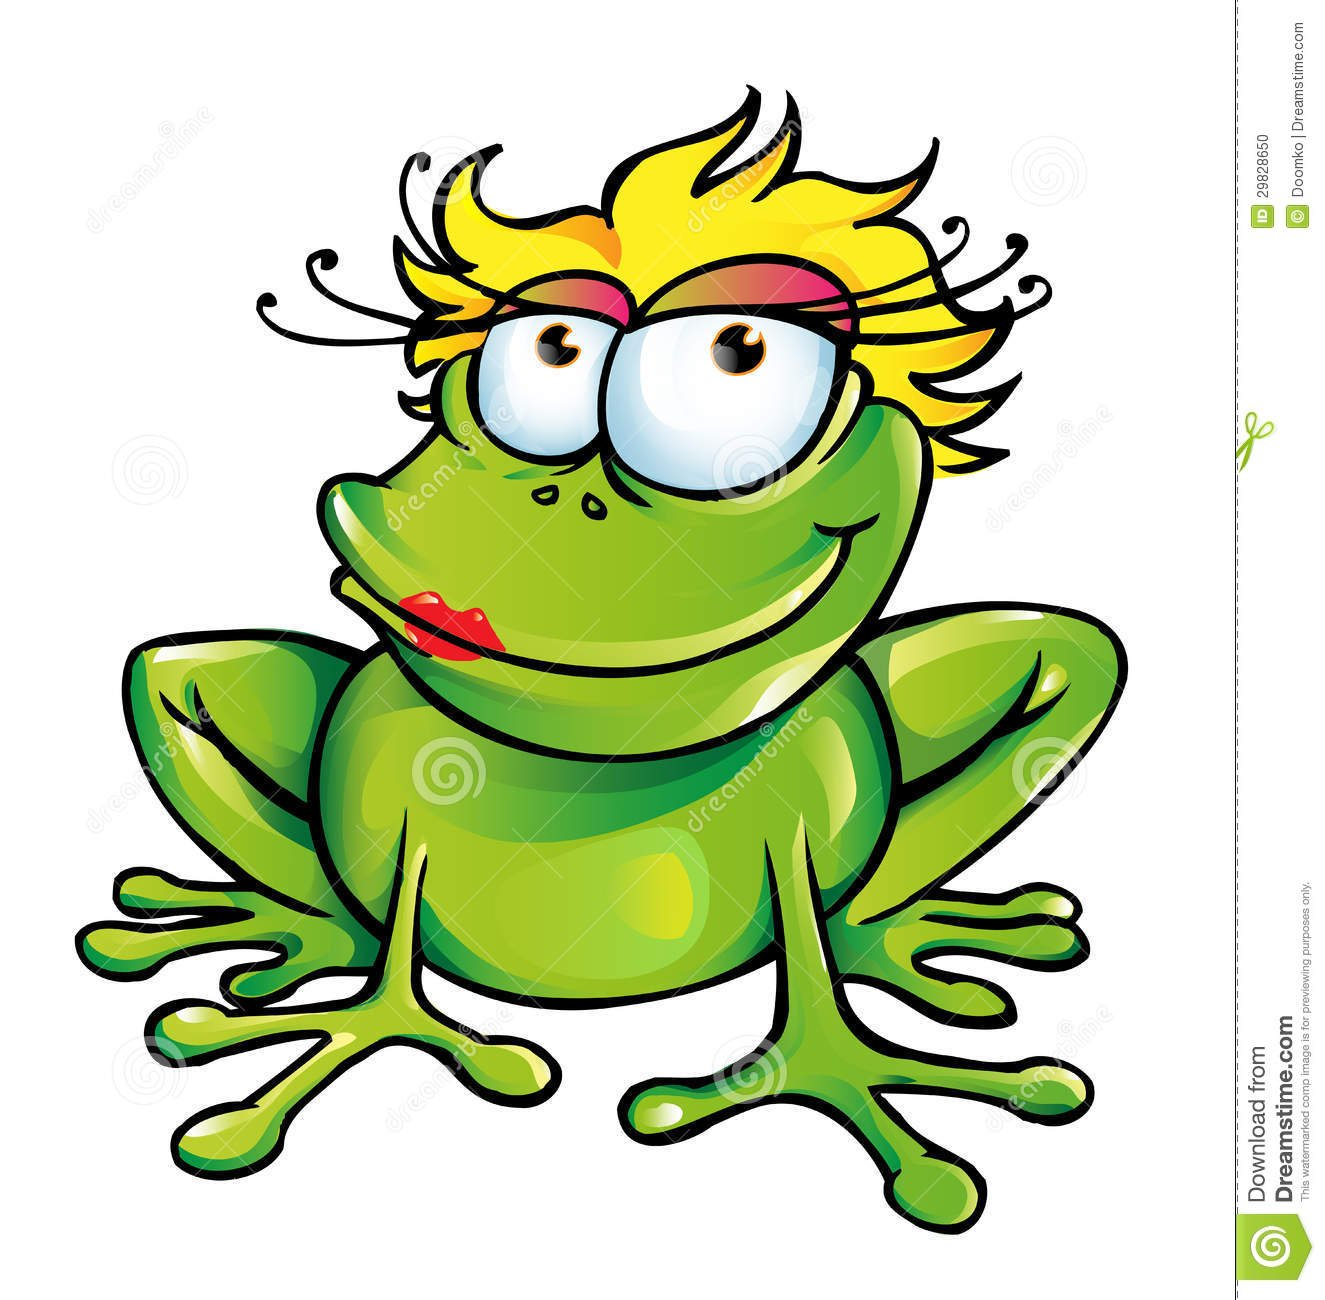 Cartoon frog - photo#41